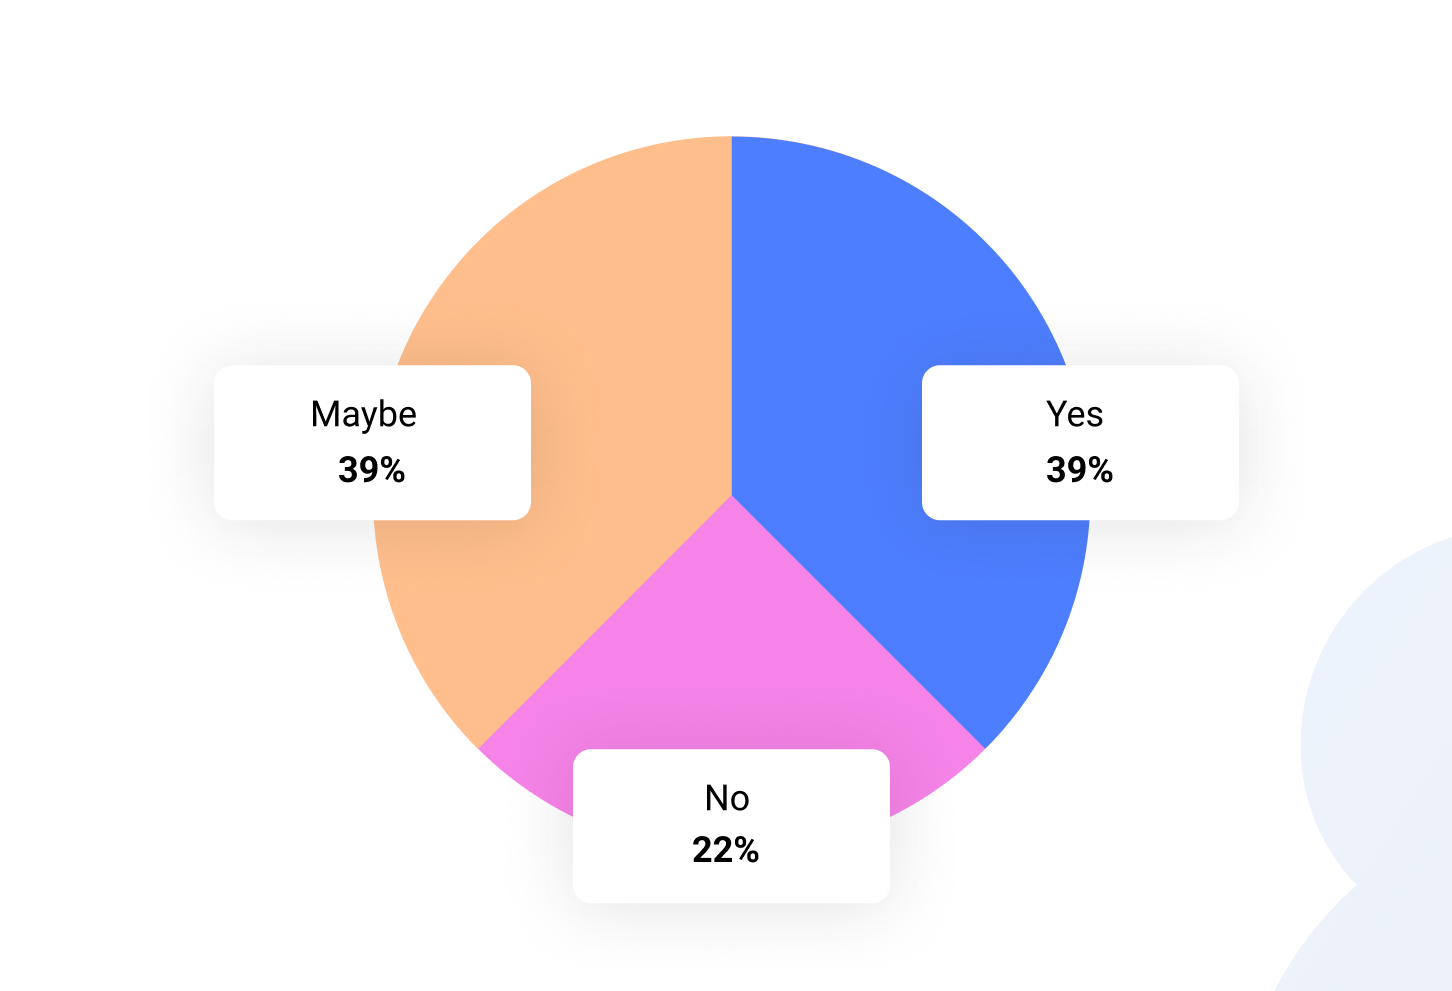 Pie Chart - Are You Making Plans to re-open any Offices in the Next 60 days